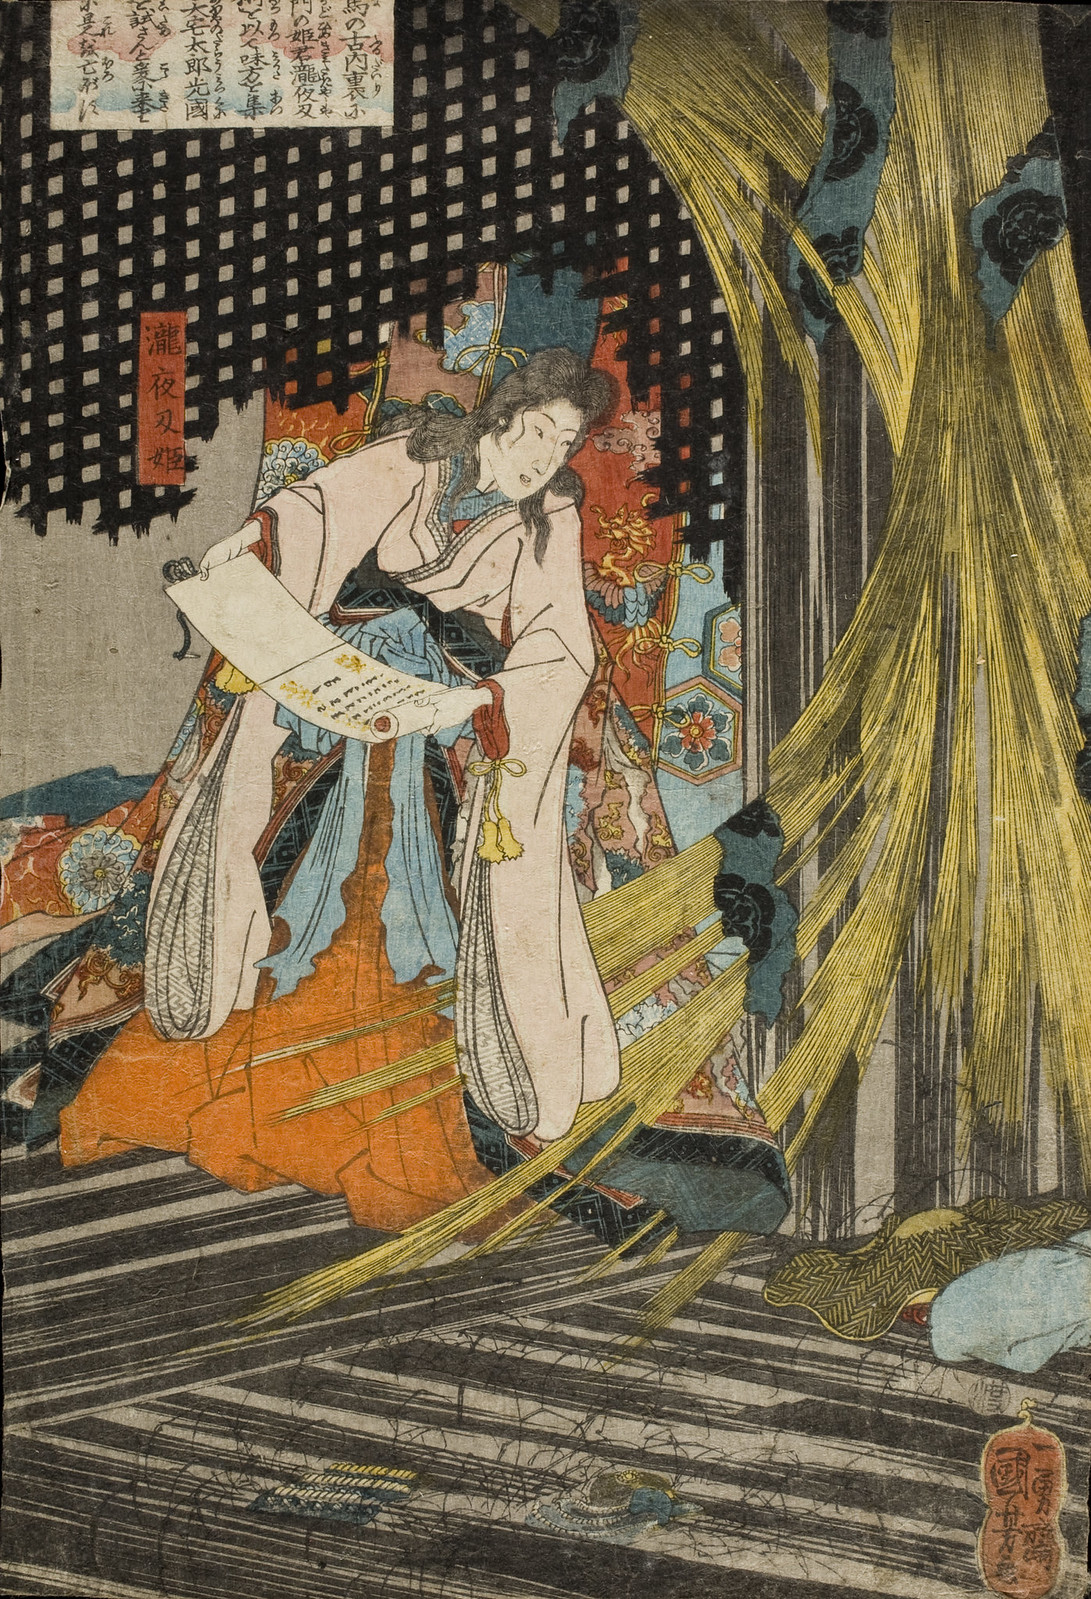 Utagawa Kuniyoshi - In the Ruined Palace at Sōma, Masakado's Daughter Takiyasha Uses Sorcery to Gather Allies 1844 (left panel)